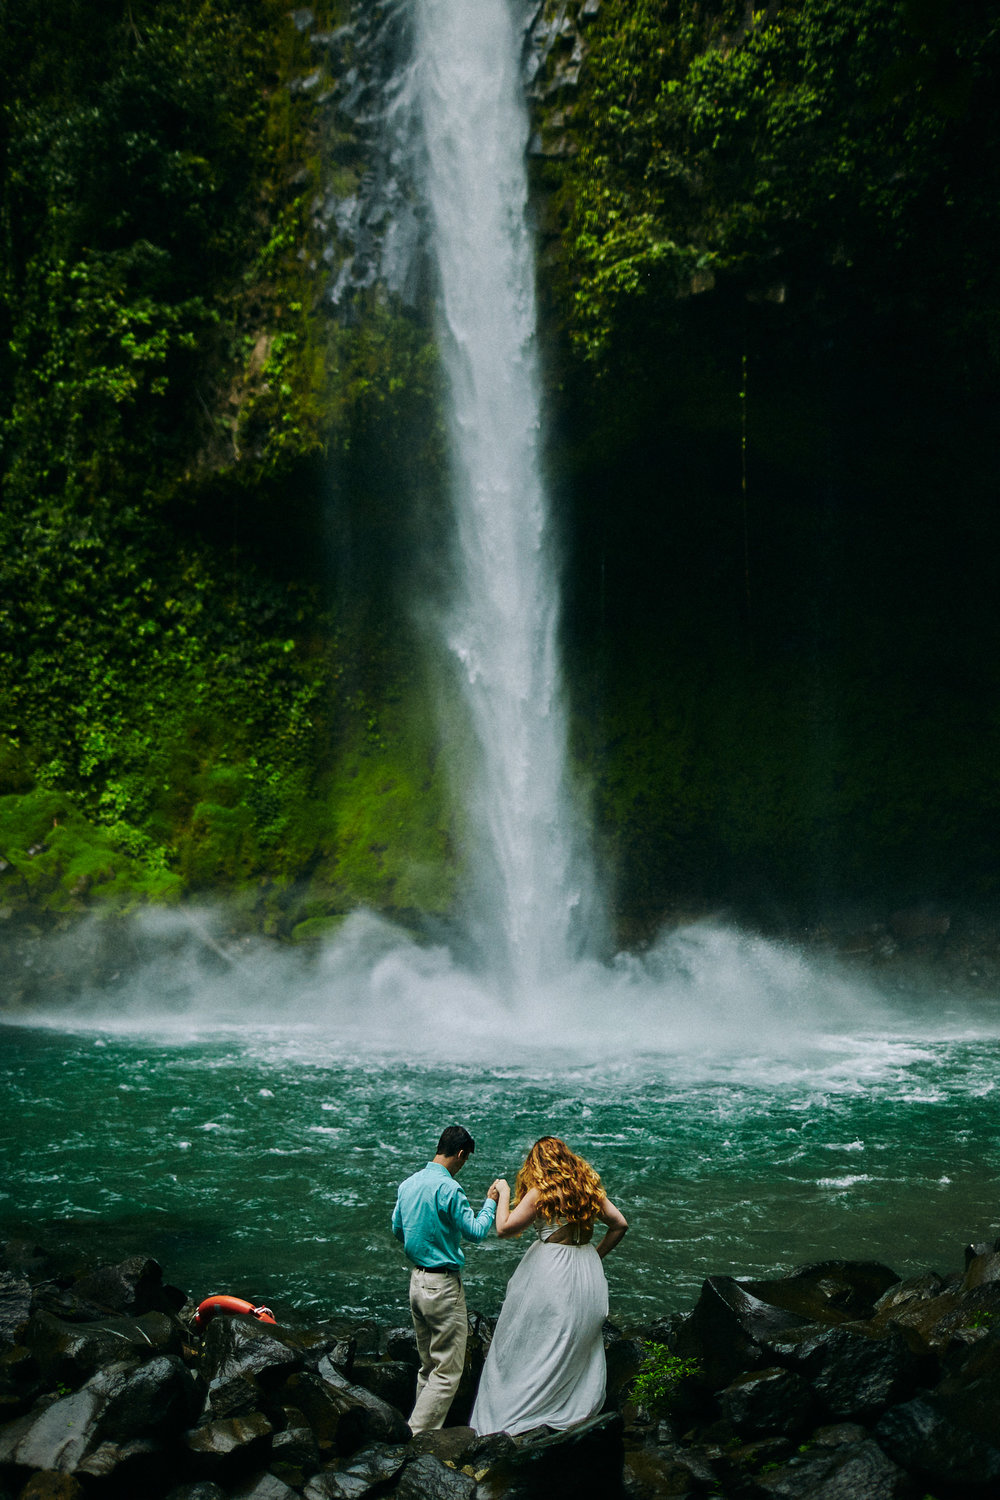 Engagement session at La Fortuna Waterfall, Costa Rica